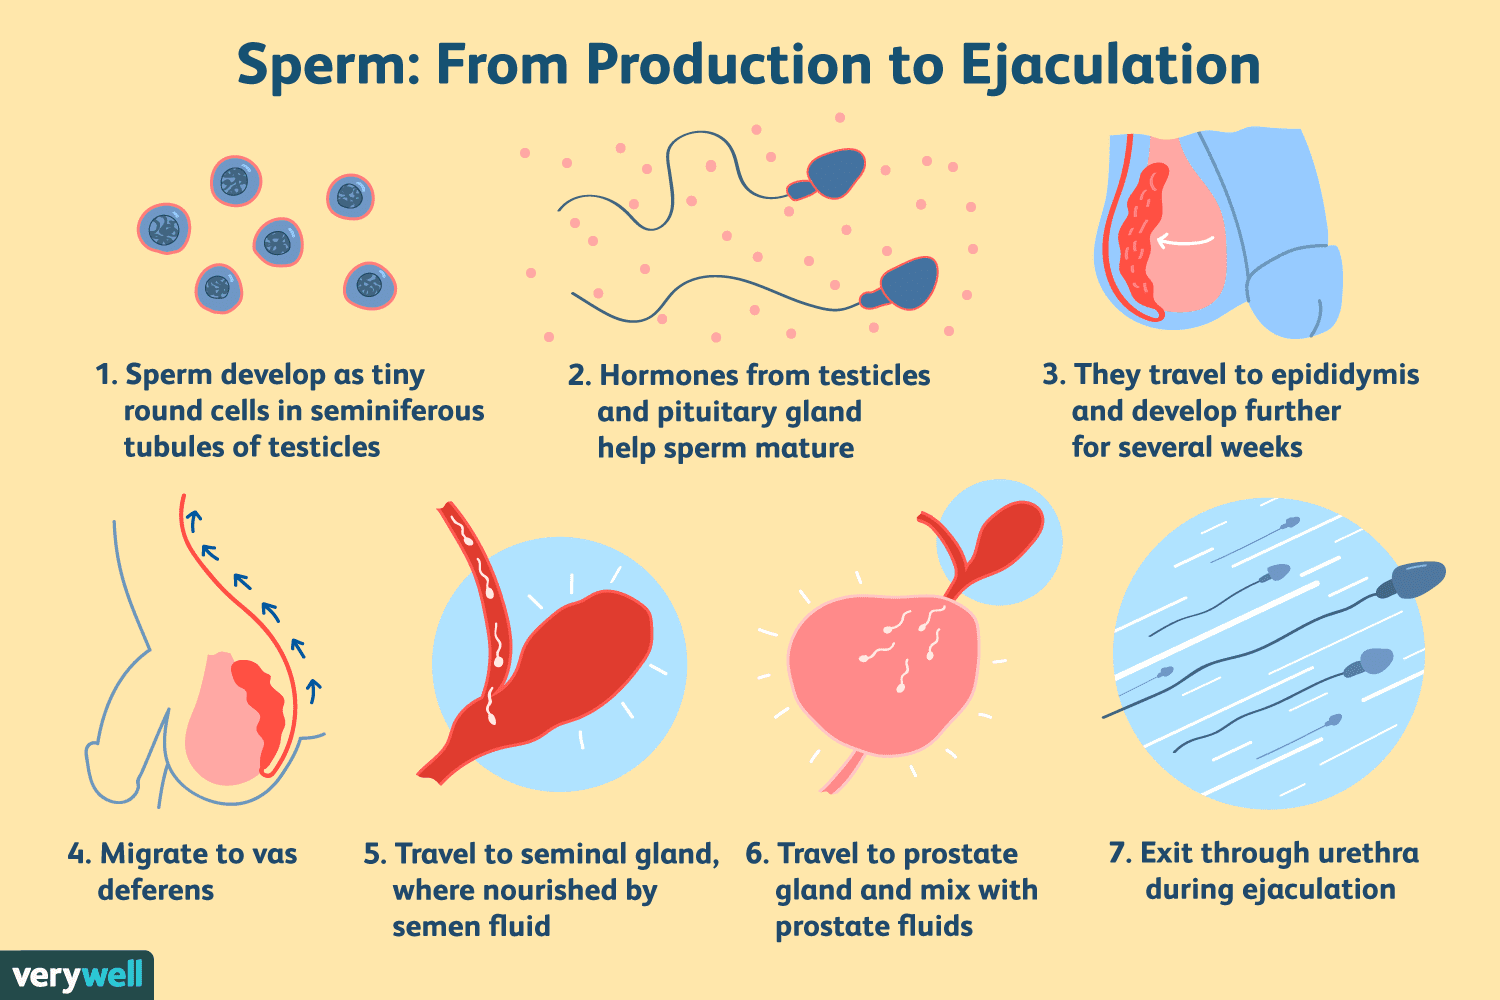 How to create spirm without having sex